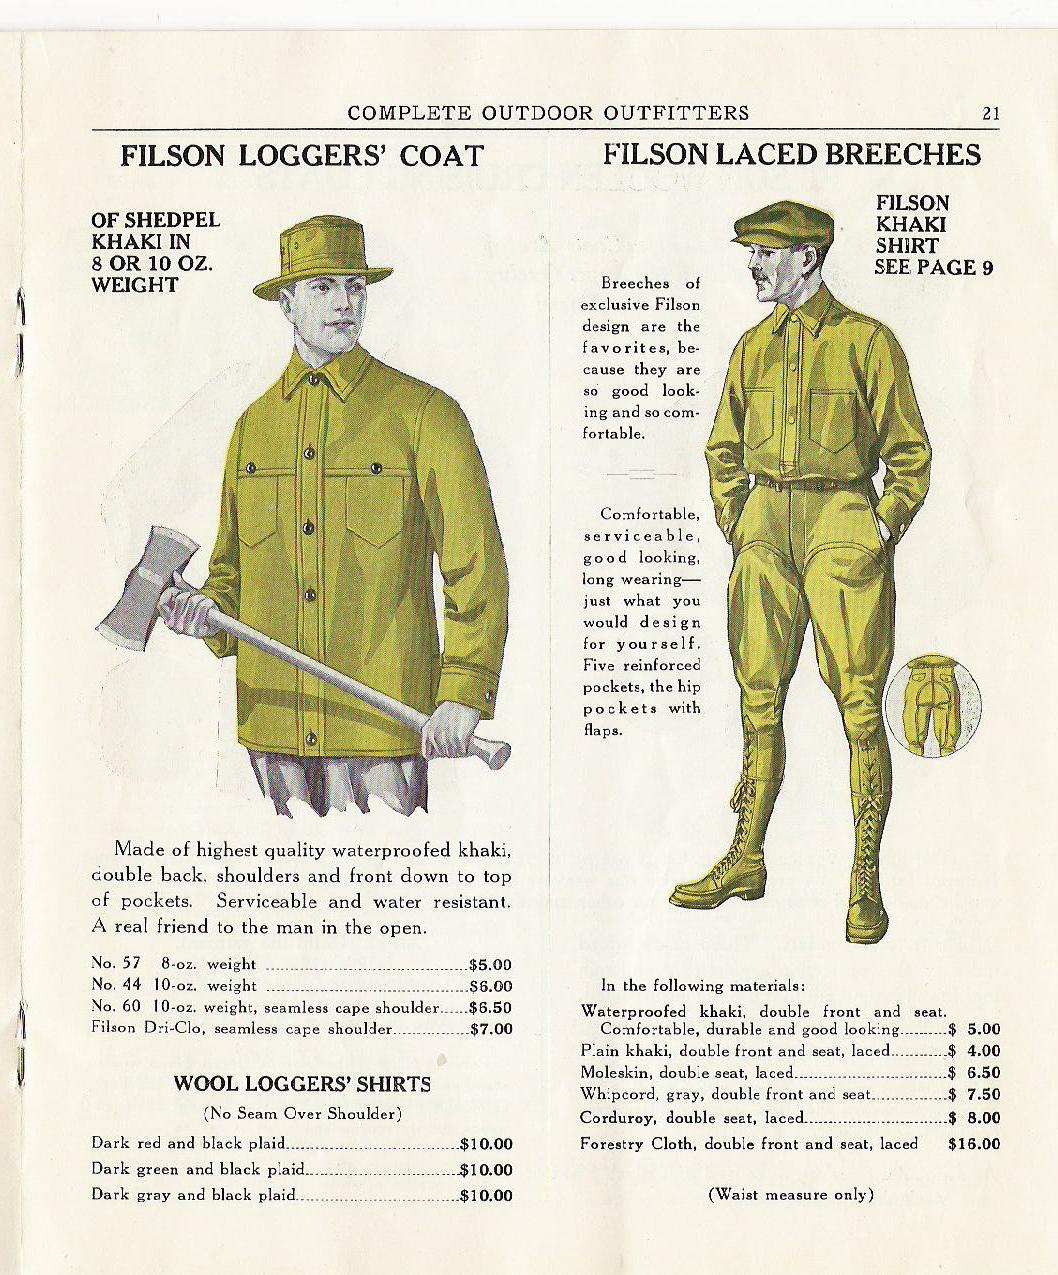 vintage filson ad advertisement loggers coat laced breeches